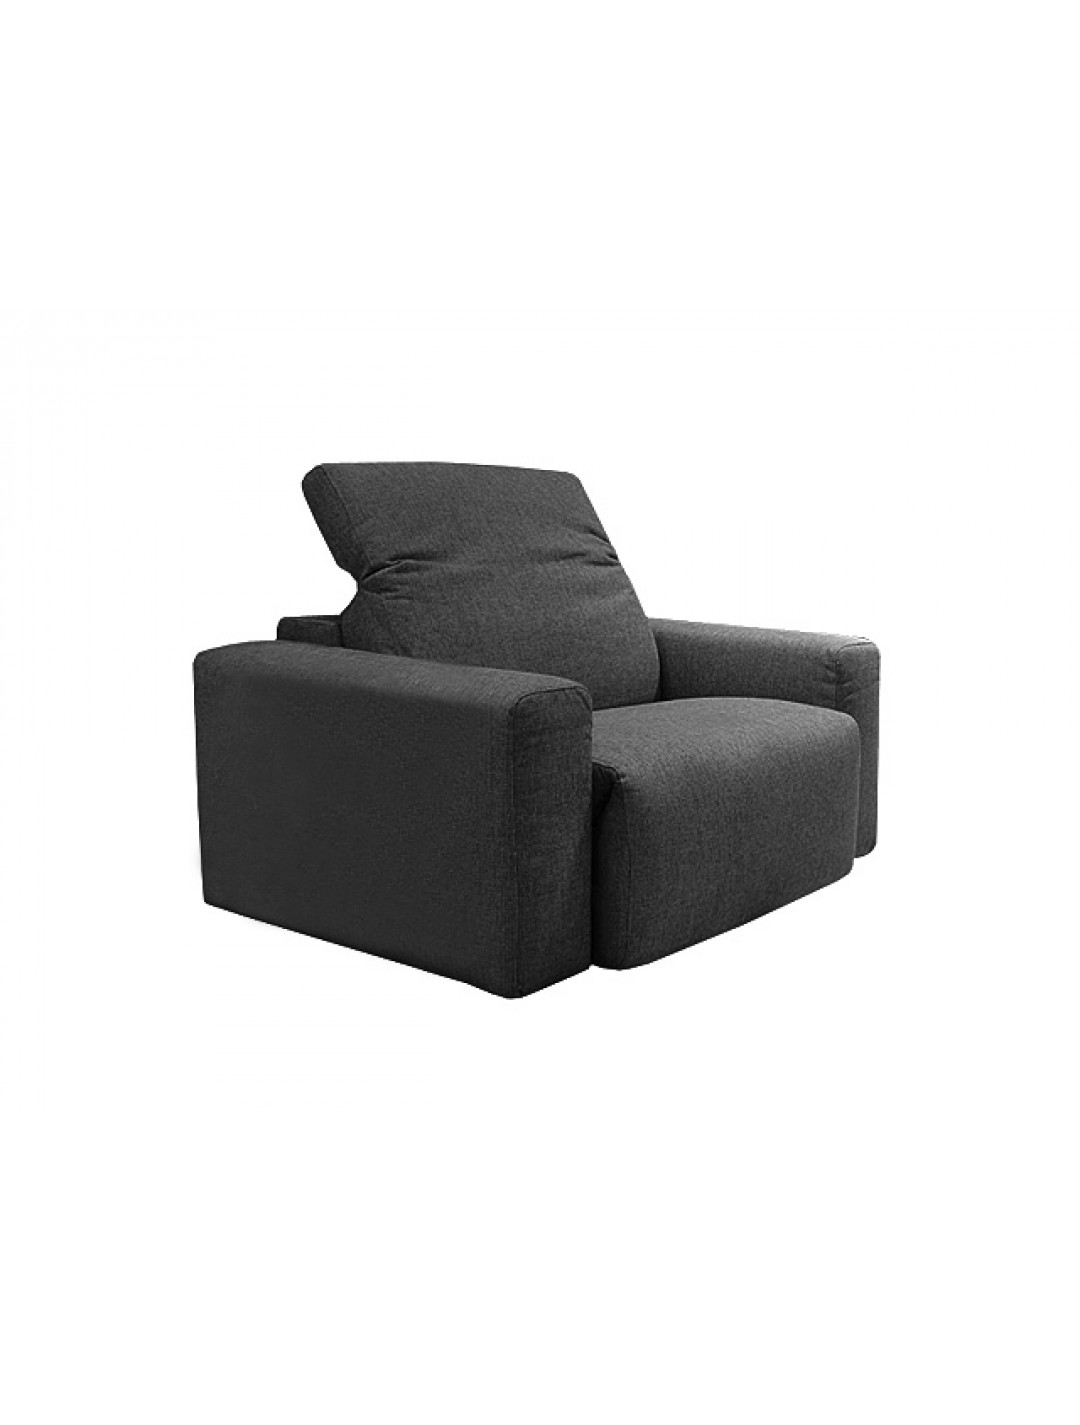 COSMOPOL ONE SEAT SOFA 2 ARMS ,UPHOLSTERY WITHOUT FABRIC:, C.O.M.